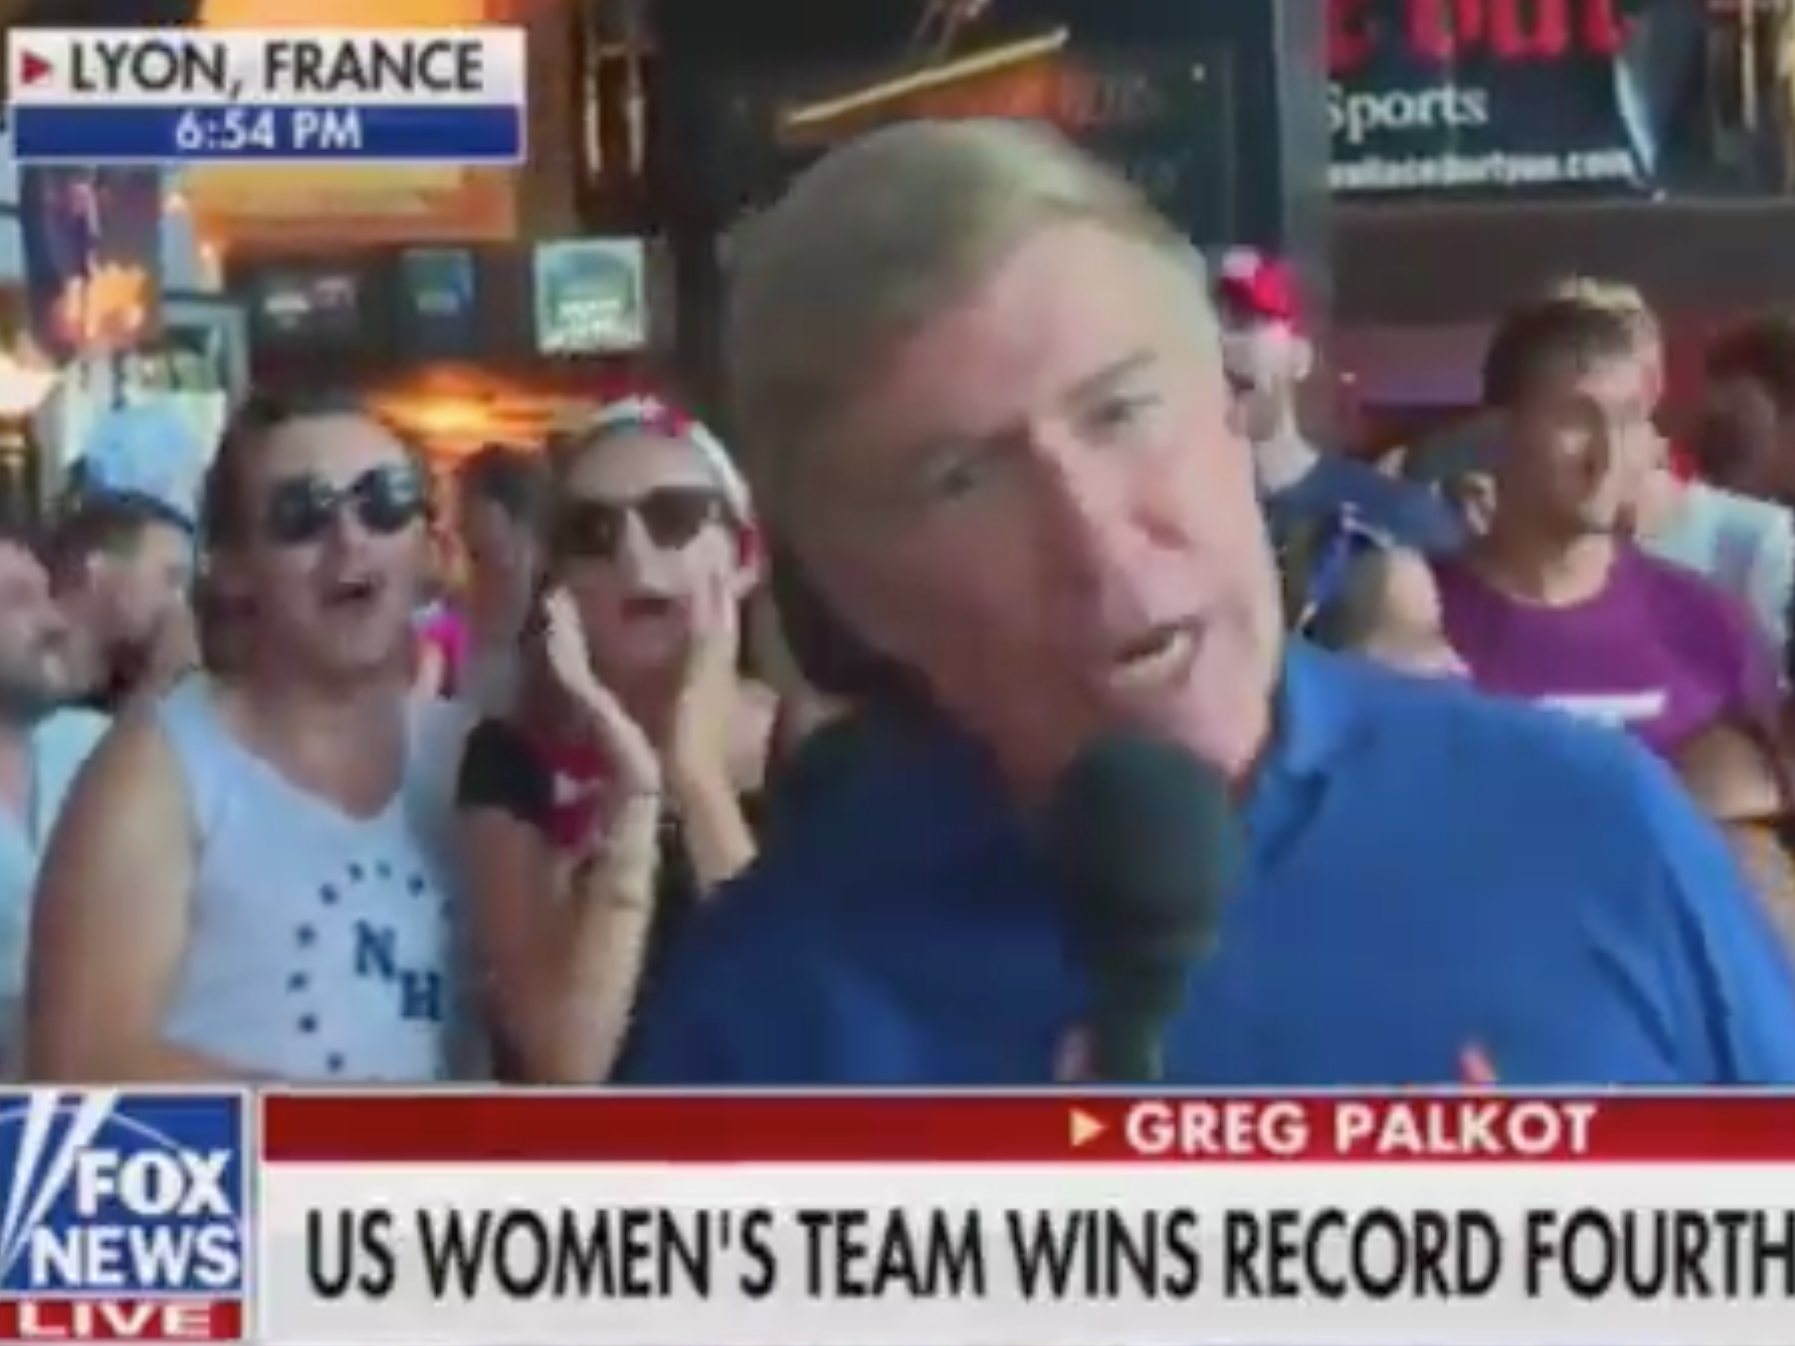 US football fans chant 'f*** Trump' during live Fox News broadcast from World Cup victory party